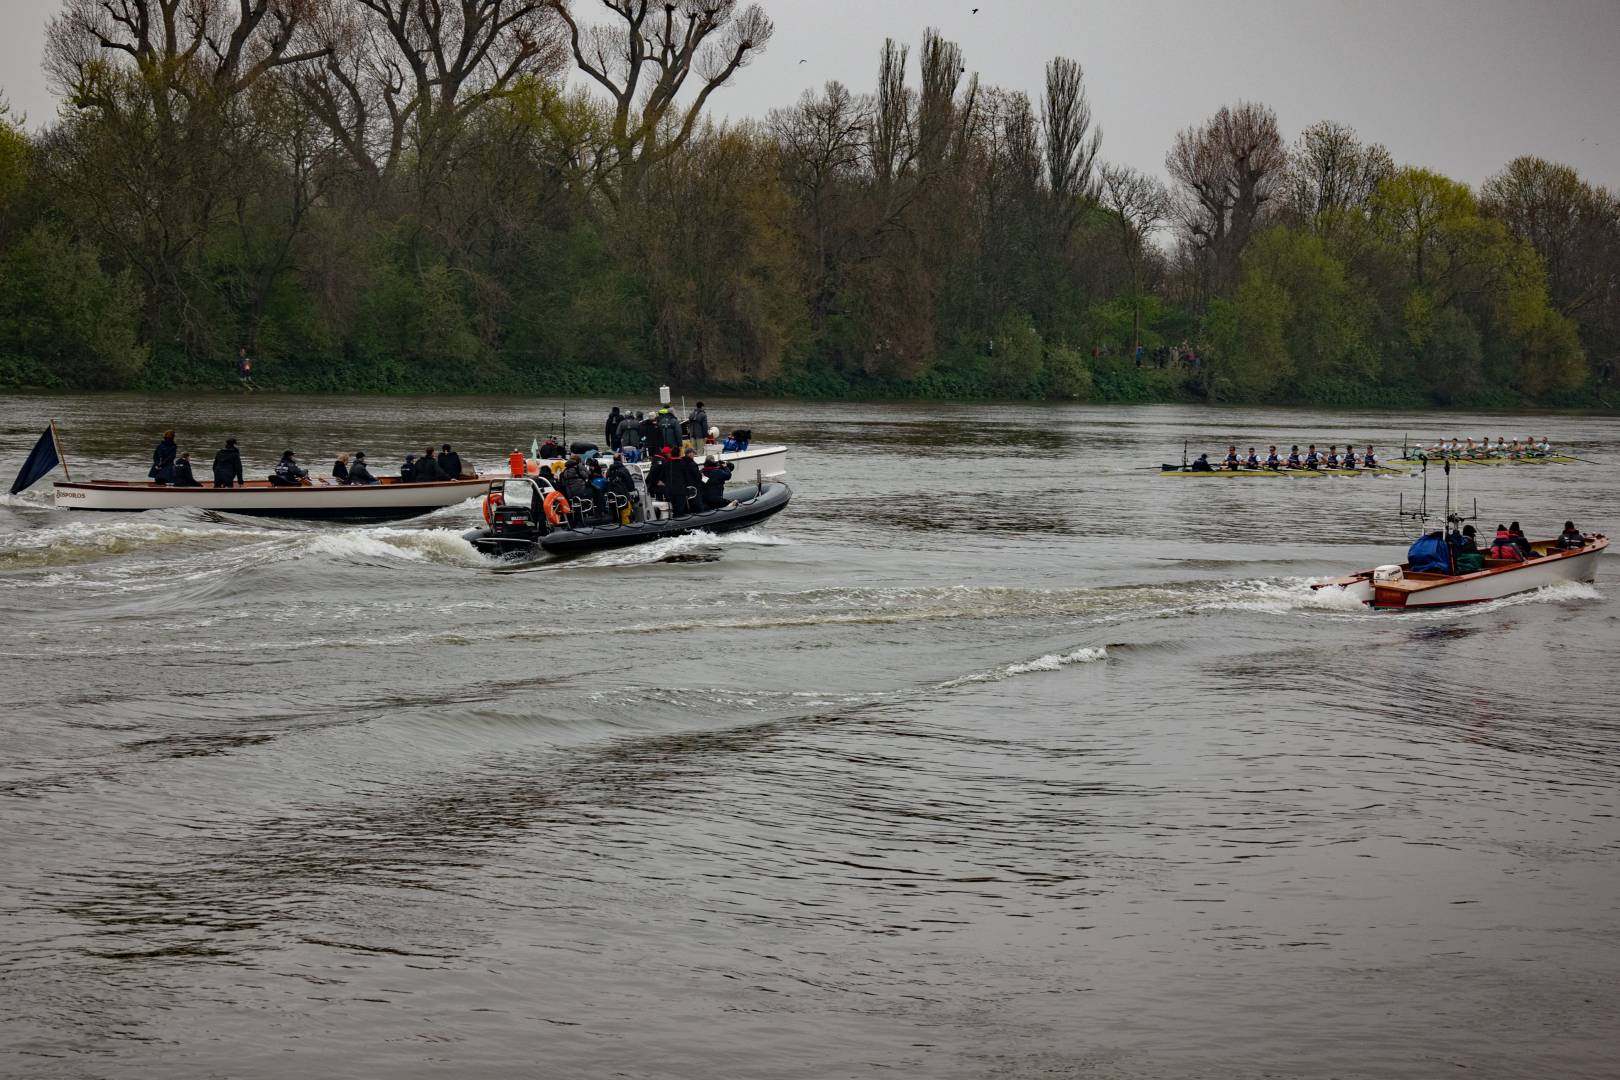 Boat chasing on the Thames